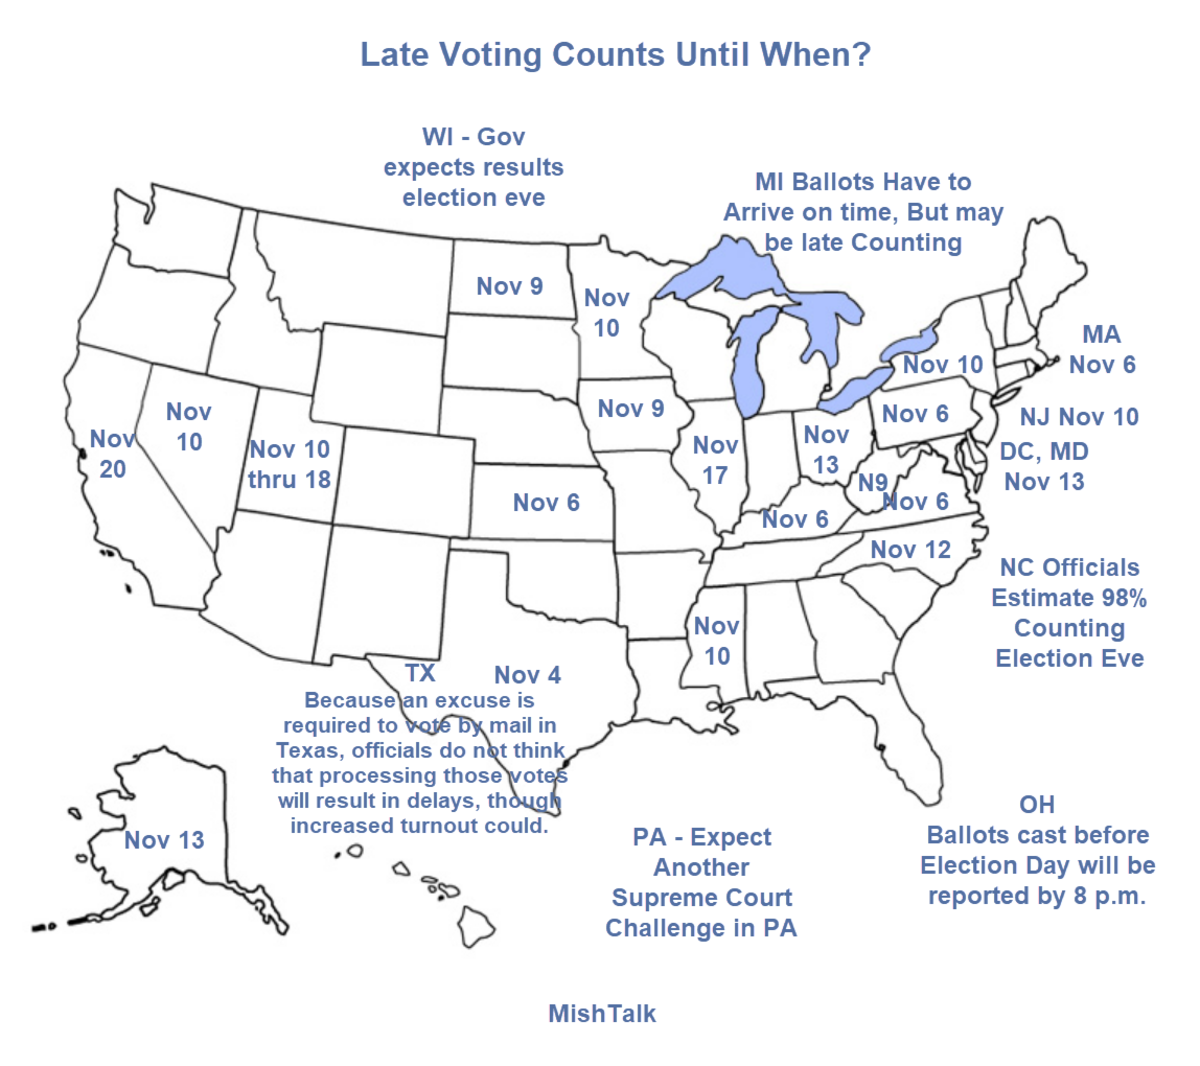 Late Voting Counts Until When